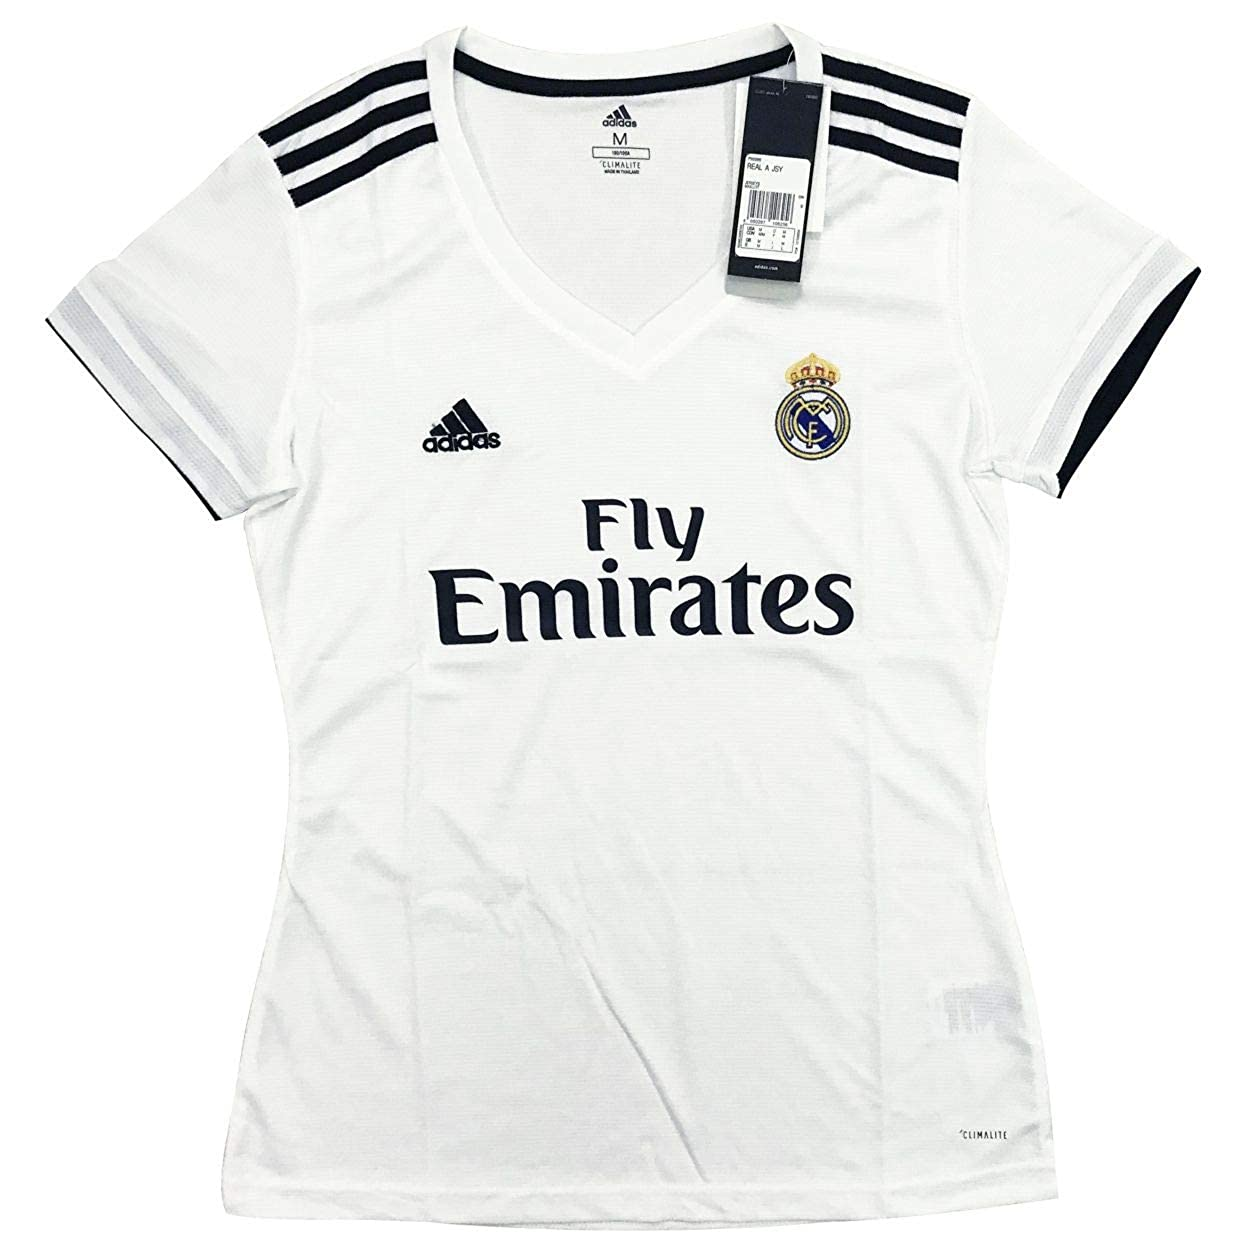 7072f8eac Amazon.com  New 2018 2019 Women s Real Madrid Home Jersey  Clothing